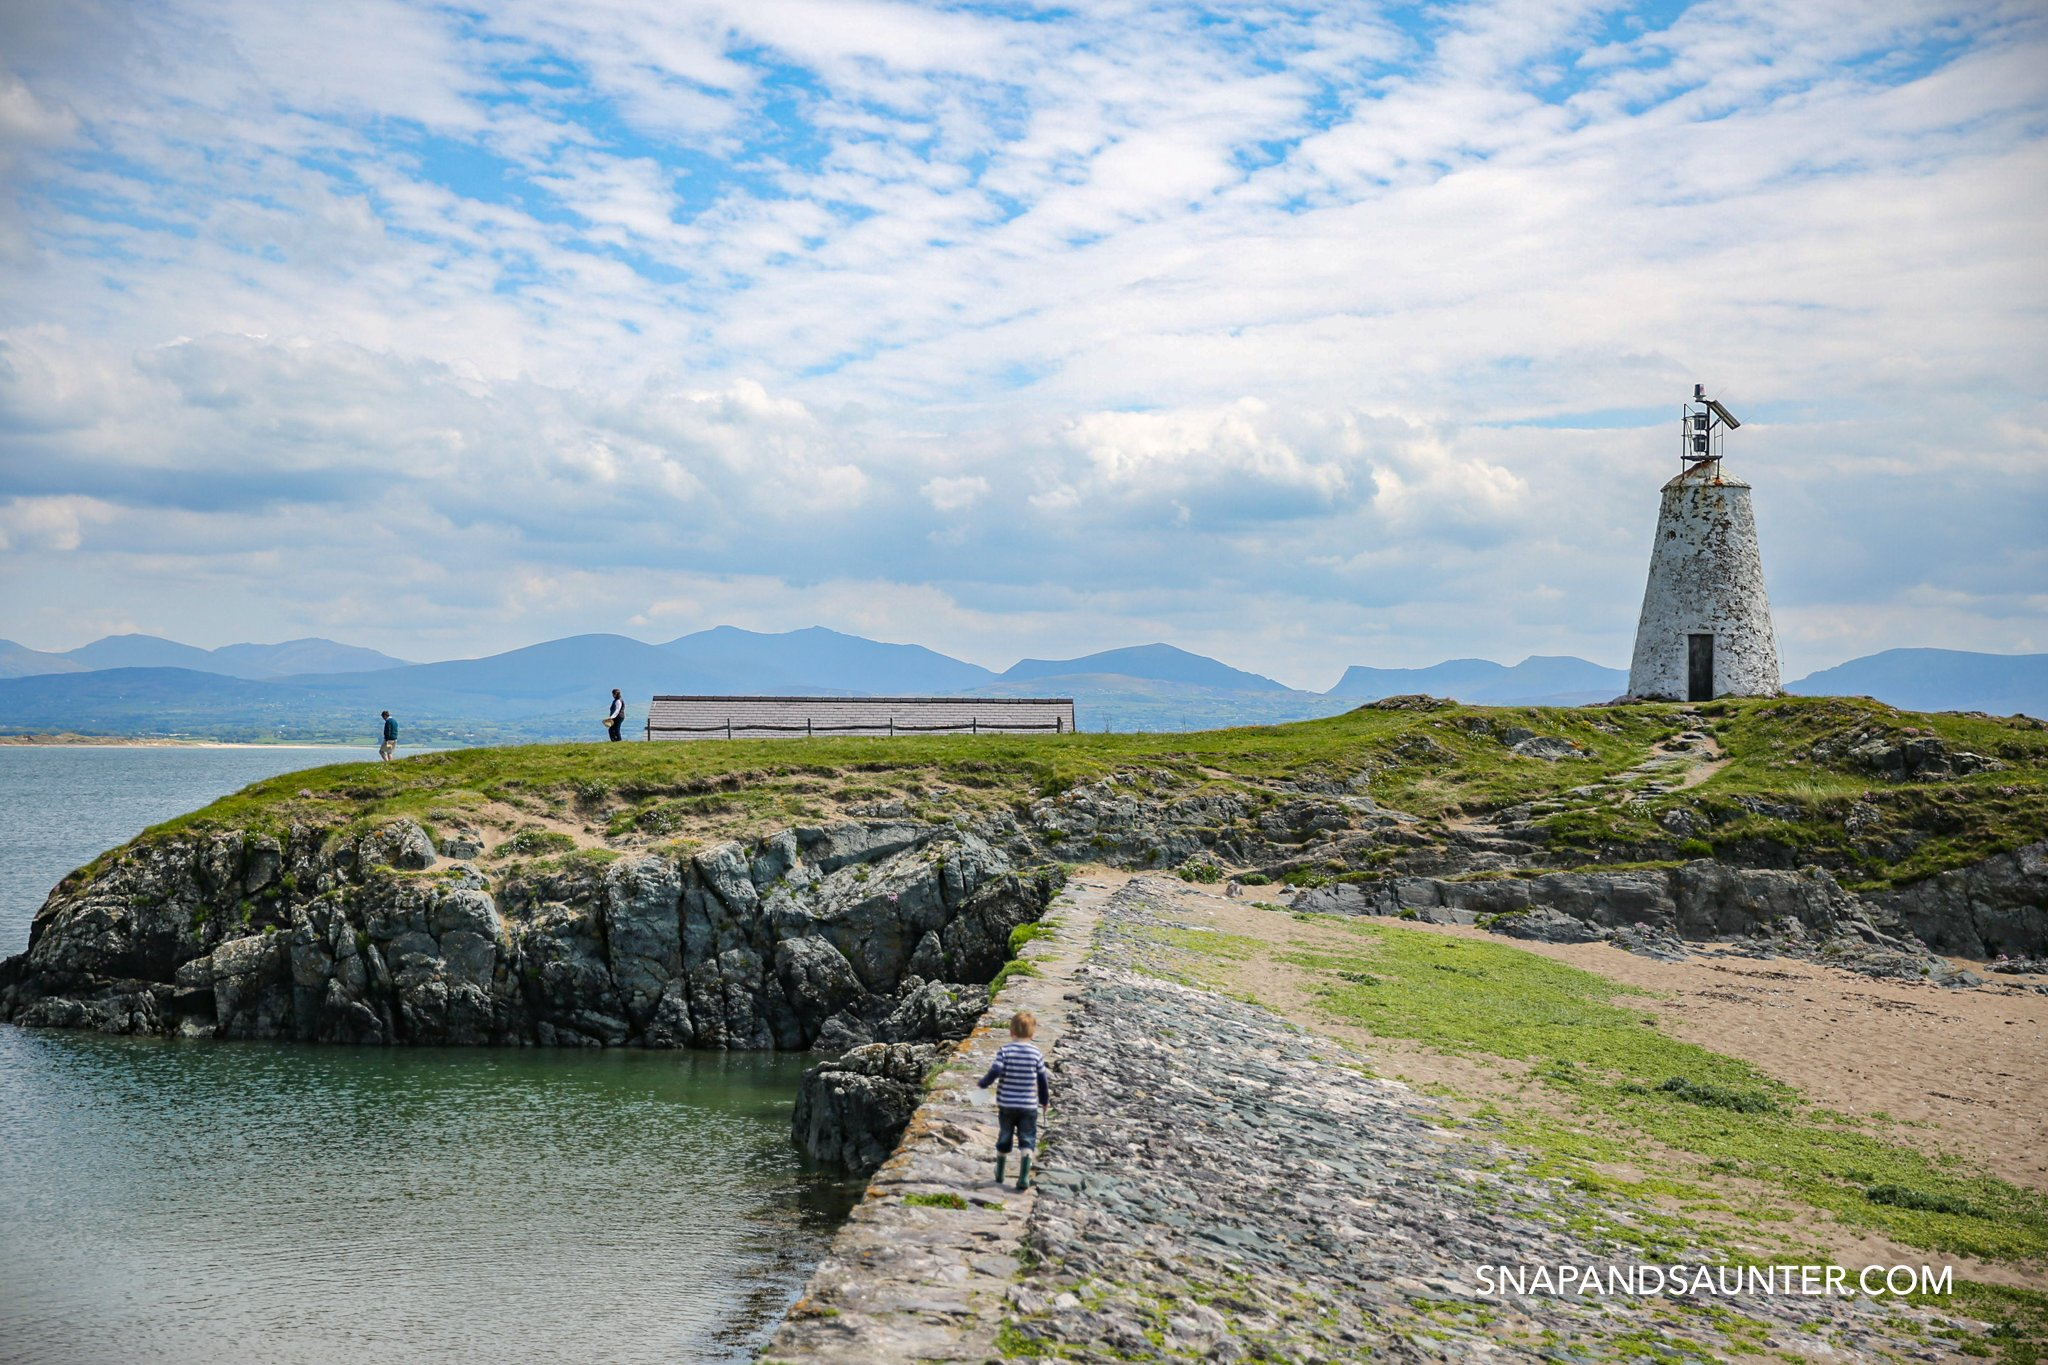 Old lighthouse on Llandwyn Island in Anglesey